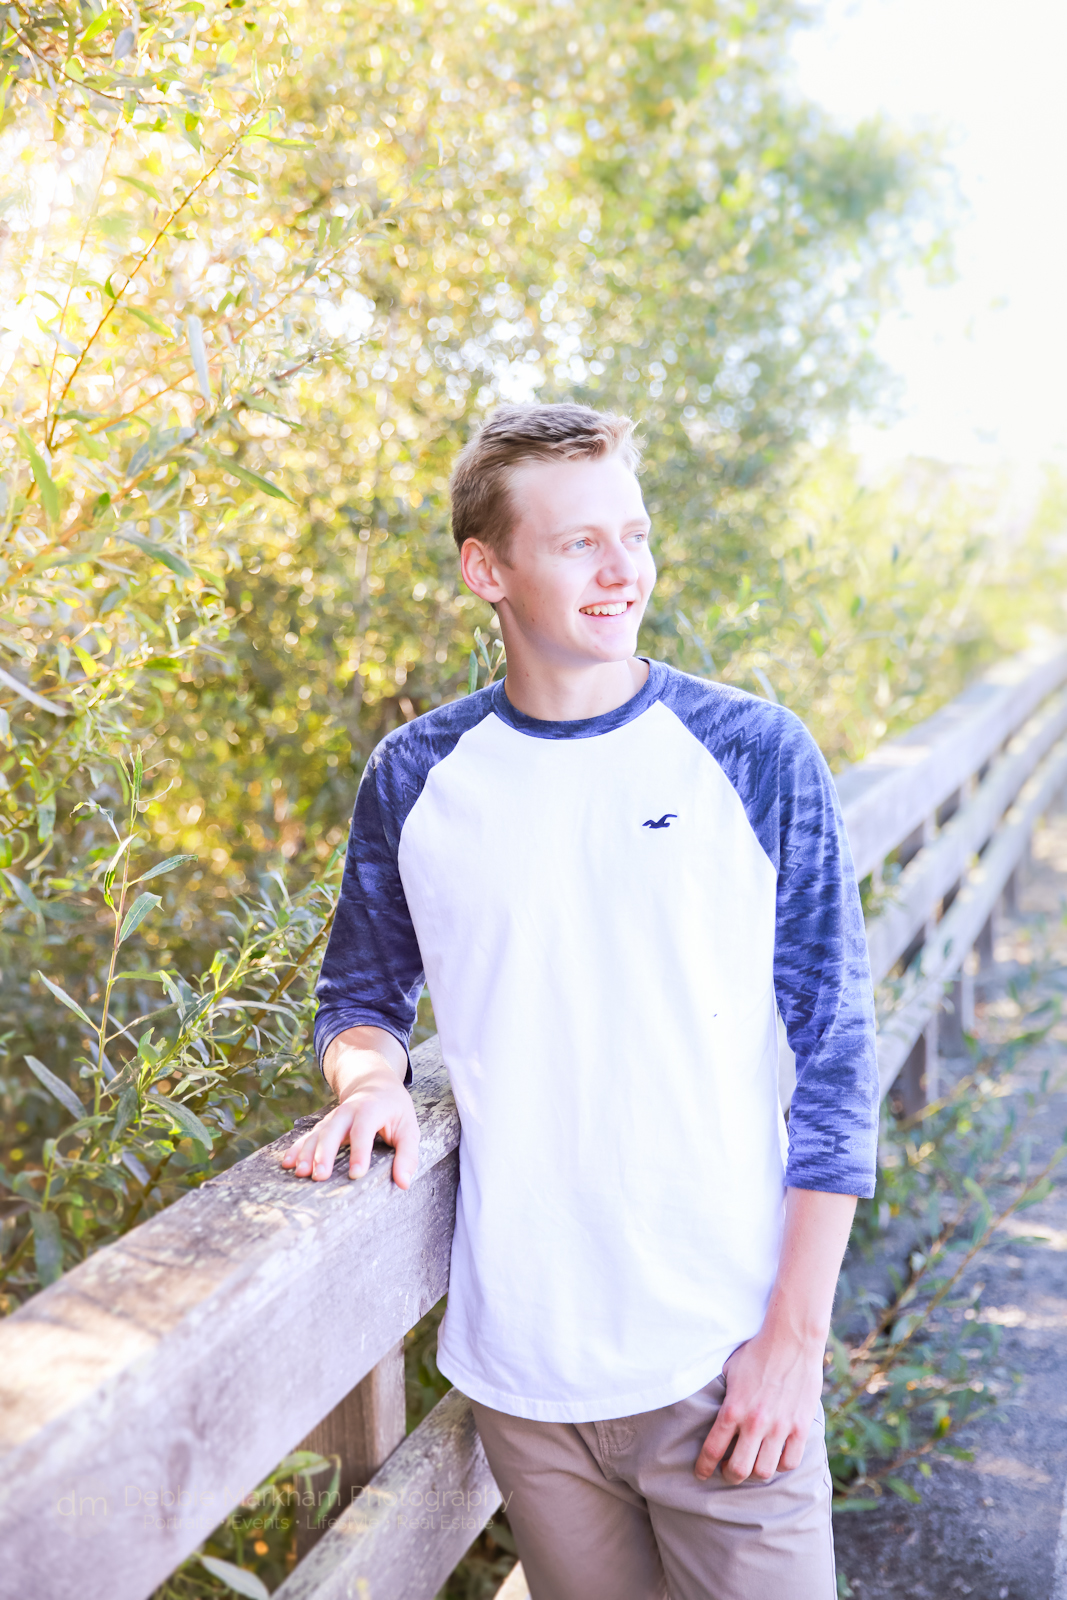 high-school_senior-portrait_boy-pose_outdoor_photos_male-senior-portrait_cambria-photographer_debbie-markham-5570